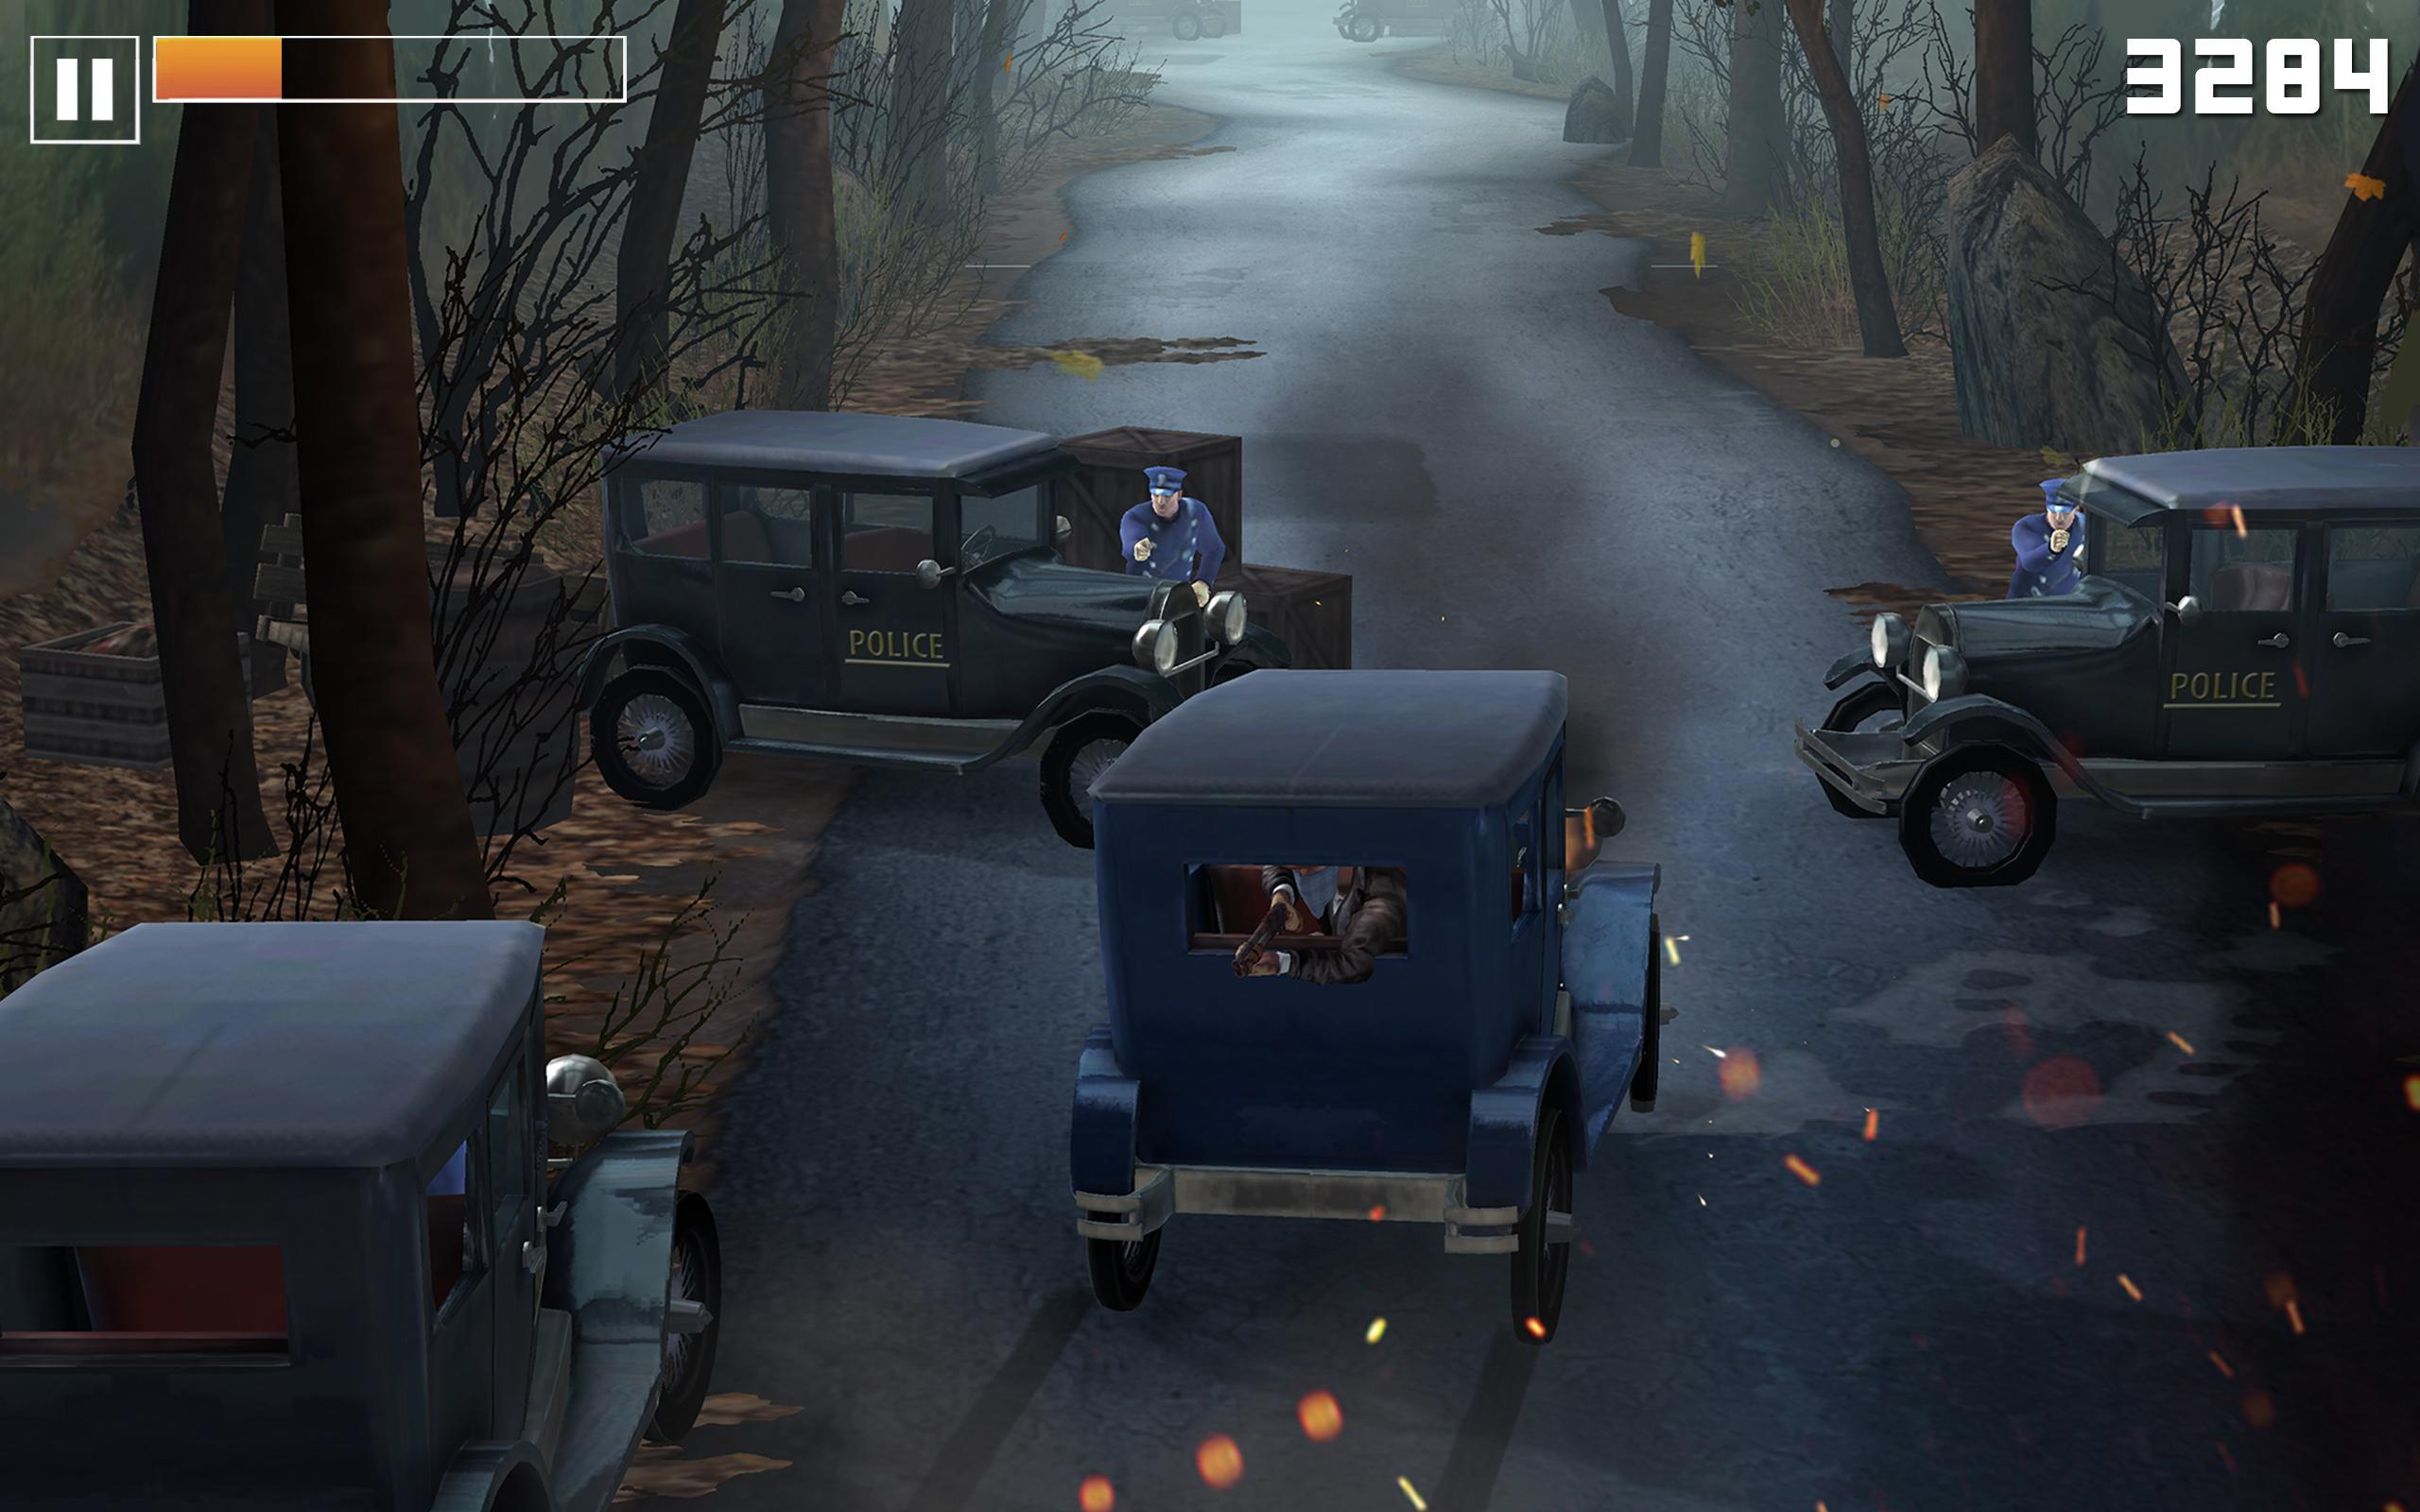 Live By Night - The Chase for Android - APK Download